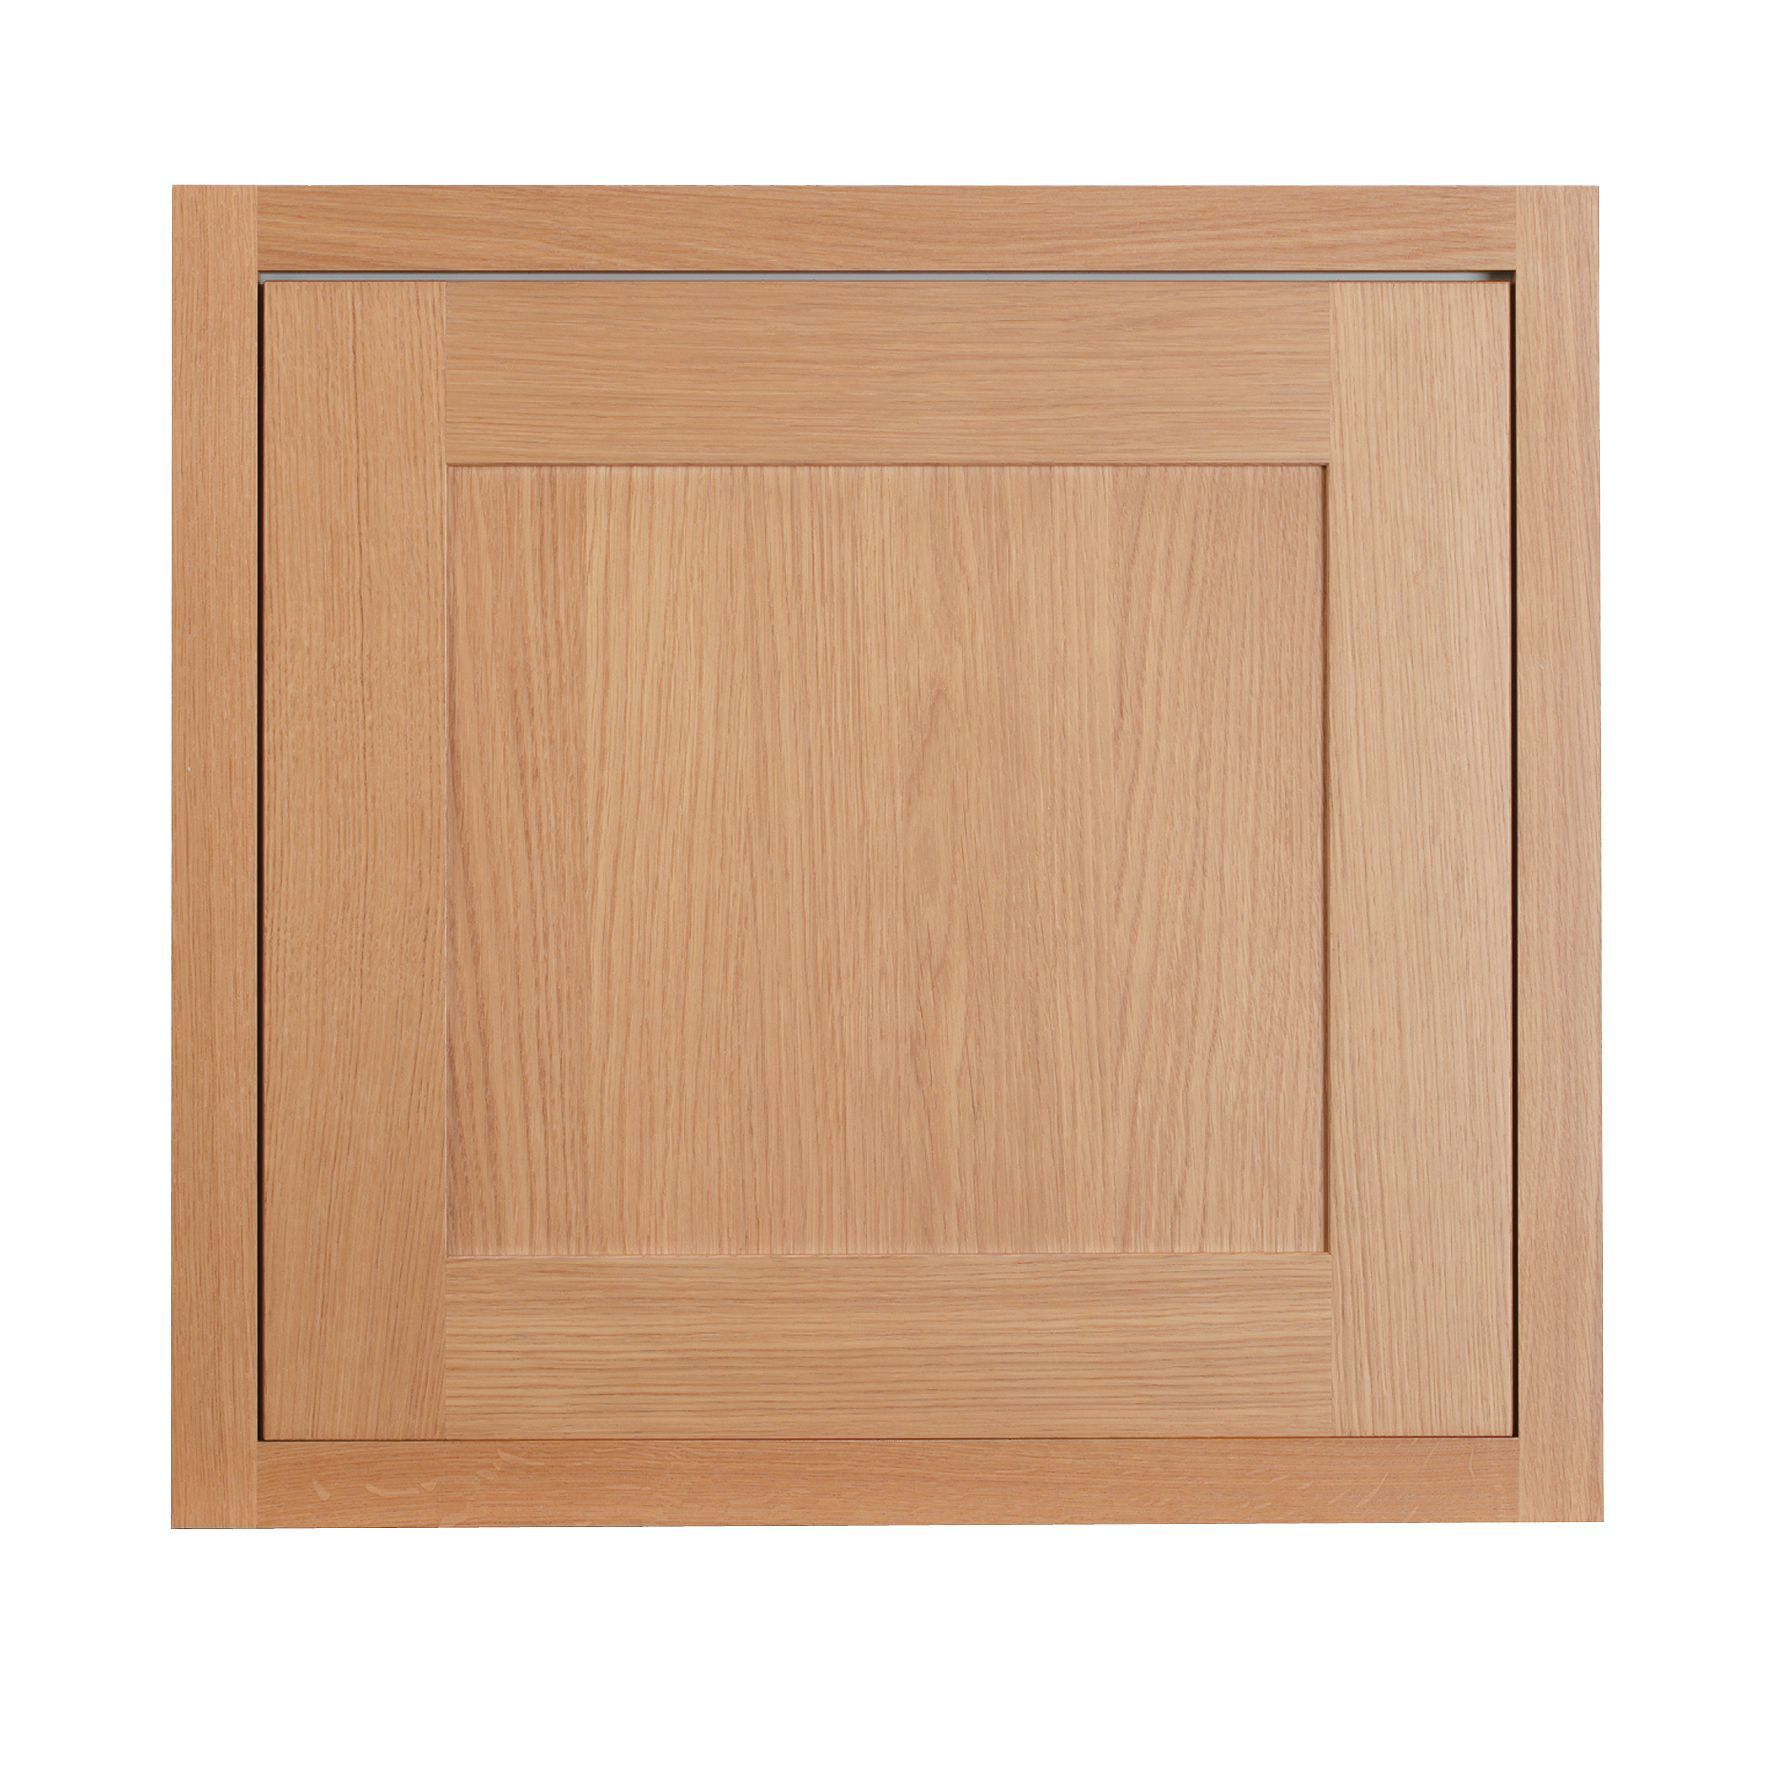 Cooke Lewis Carisbrooke Oak Framed Oven Housing Door W 600mm Departments Diy At B Q